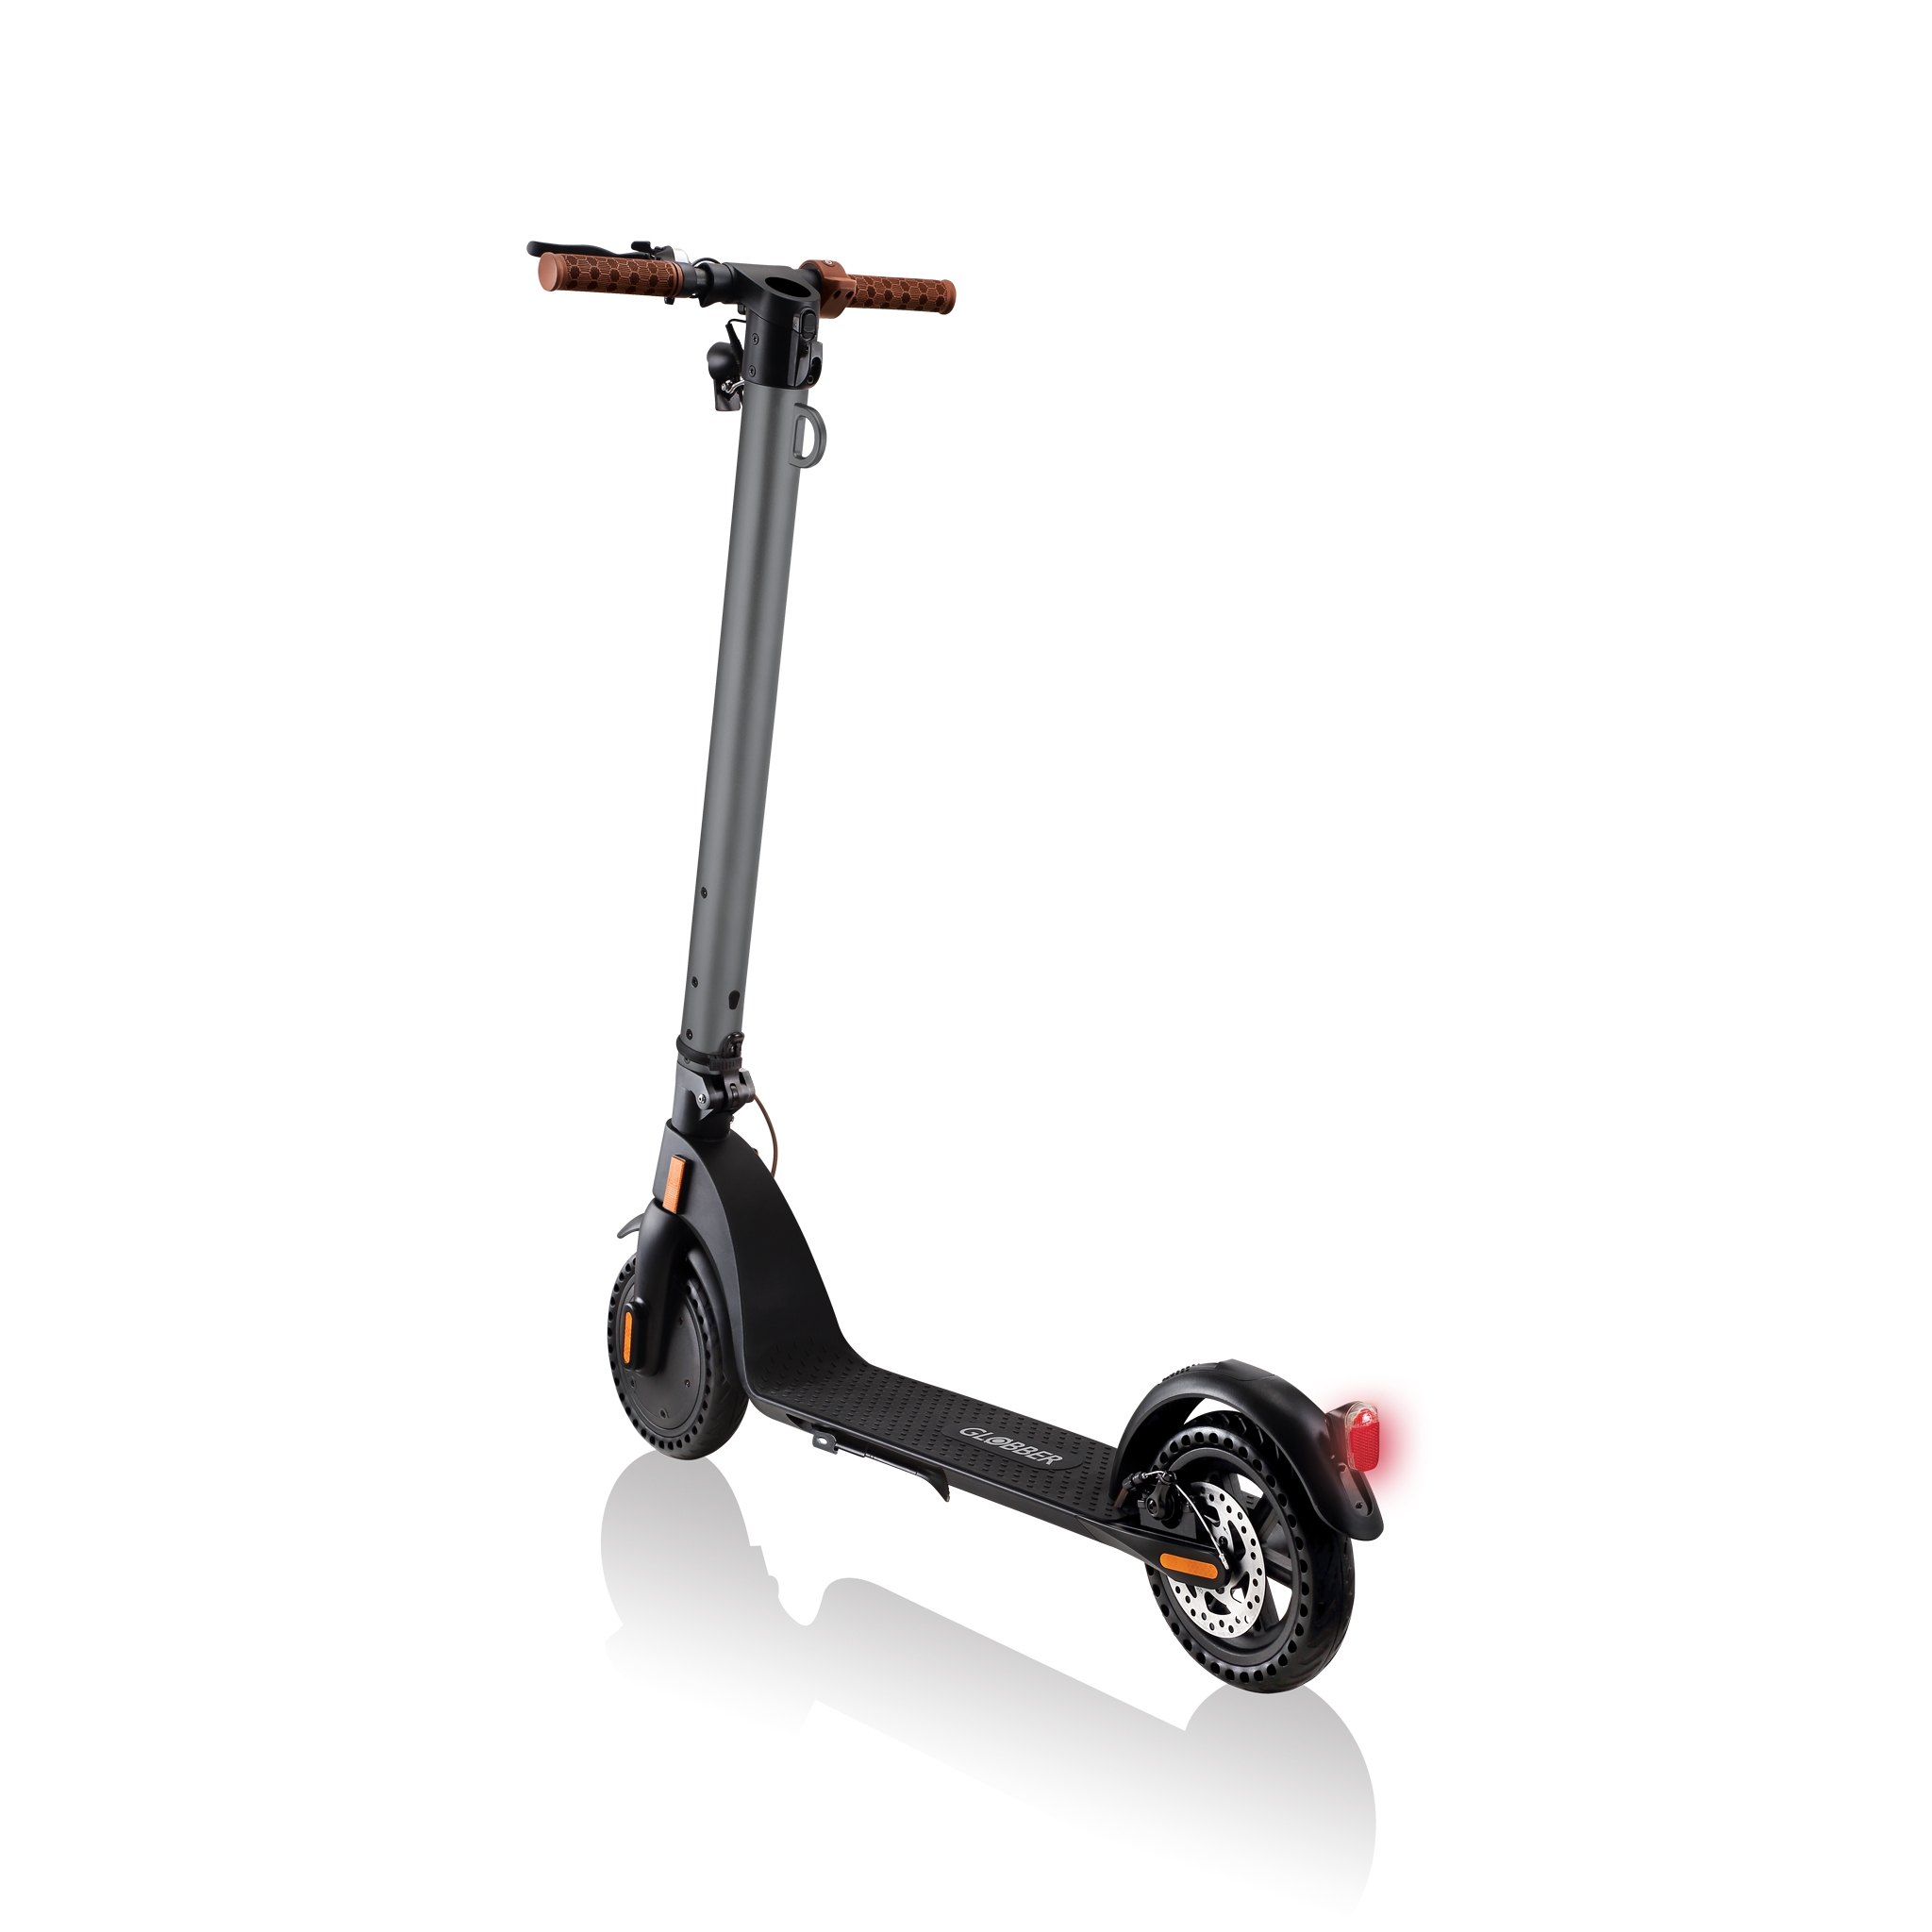 Globber-ONE-K-E-MOTION-23-electric-scooter-for-teens-and-adults-with-dual-braking-system 4